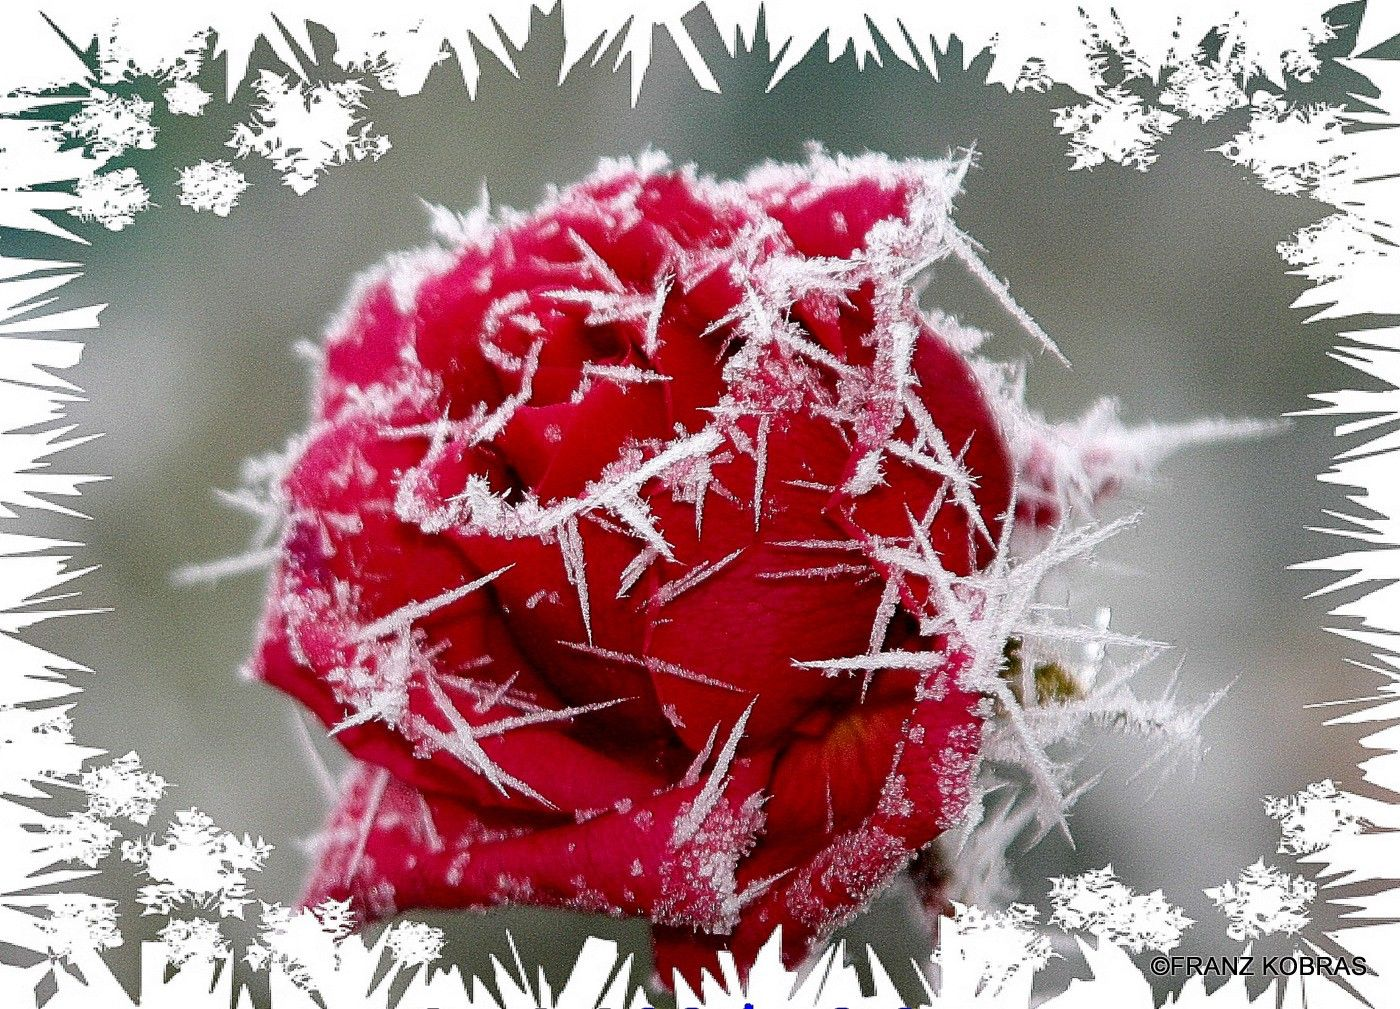 Flower: Frosty Rose Snow Winter Flowers Wallpapers Hd For Facebook ...